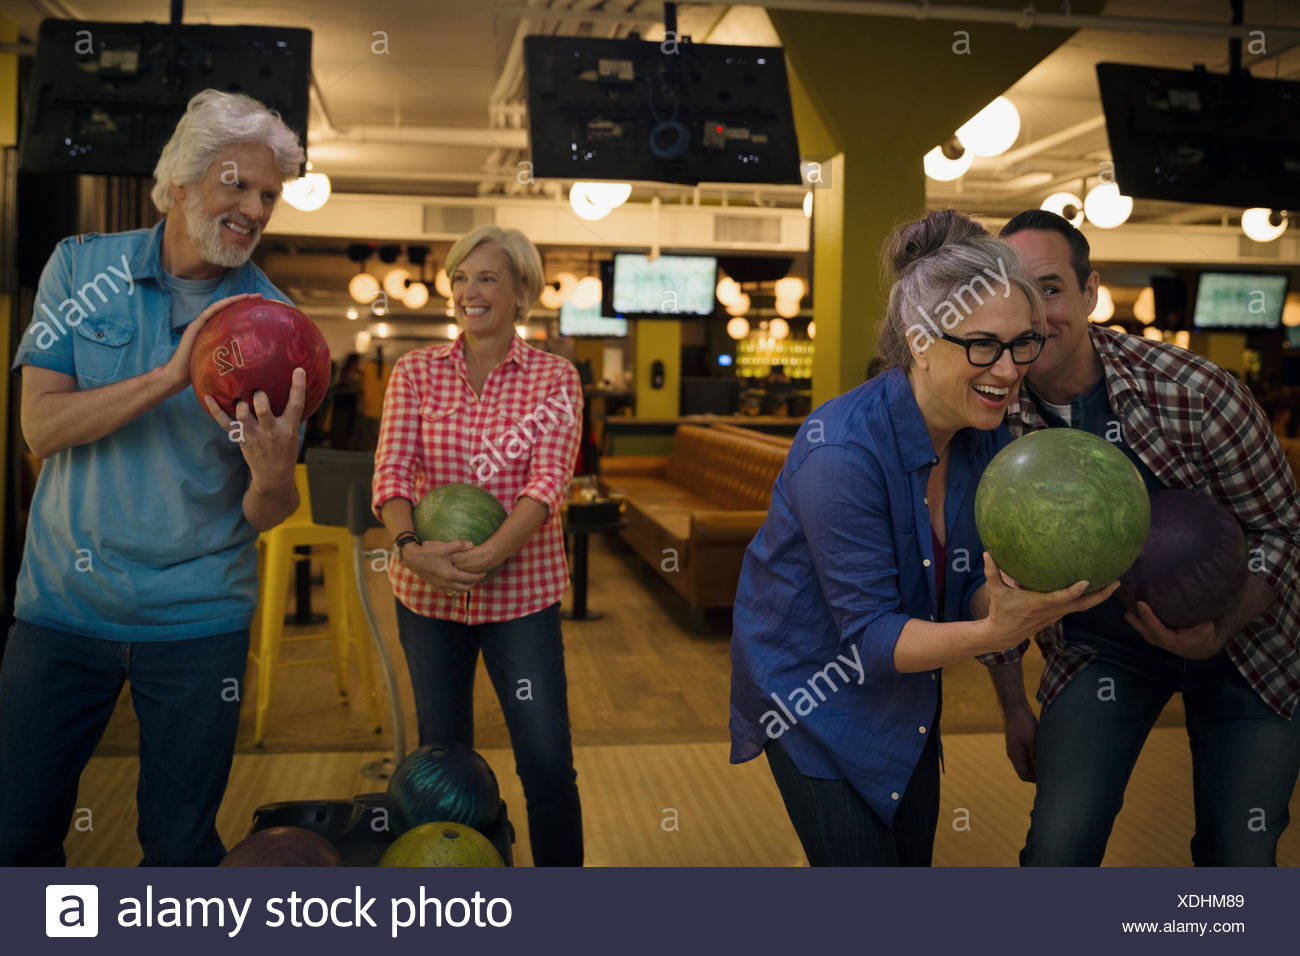 Bowling bowling d'amis Photo Stock